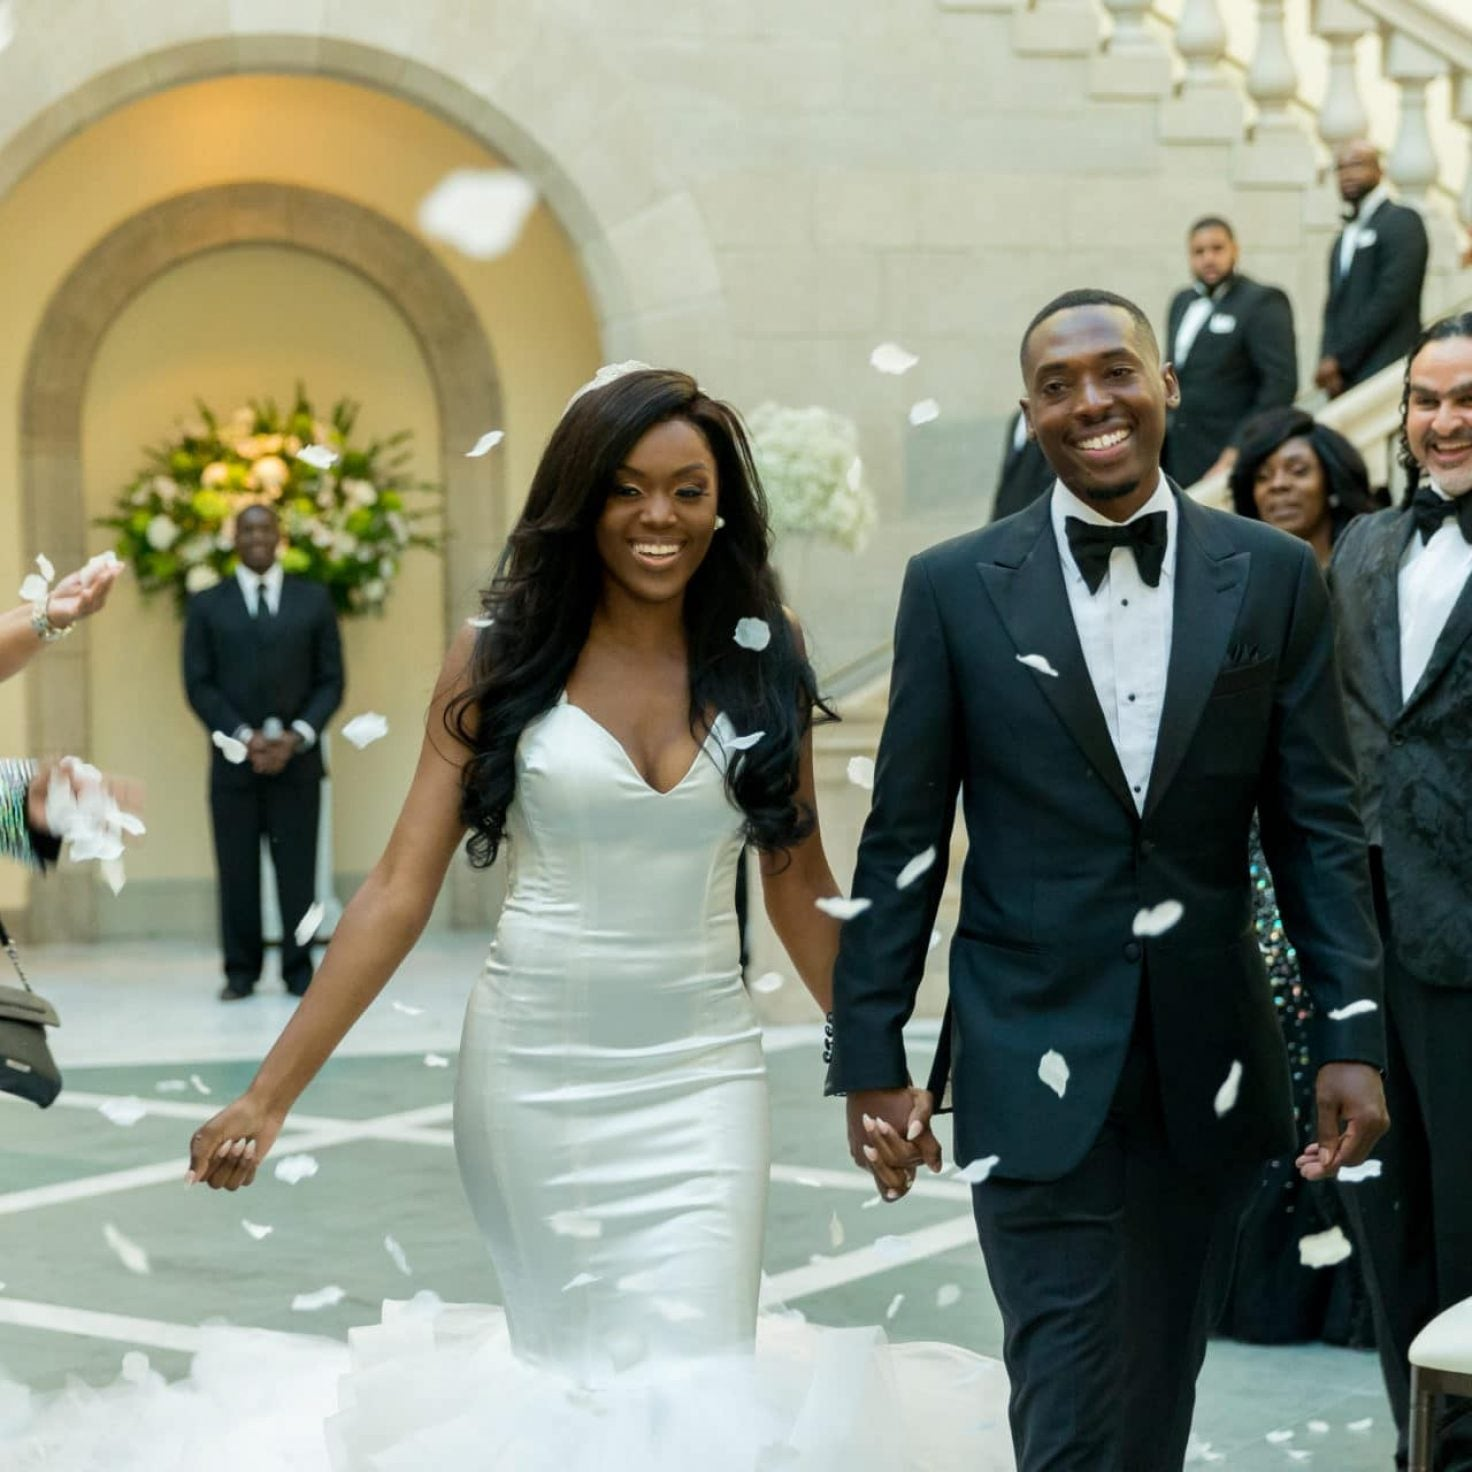 Bridal Bliss: Sydnisha and Johnathan's Black-Tie Wedding Was A Work Of Art